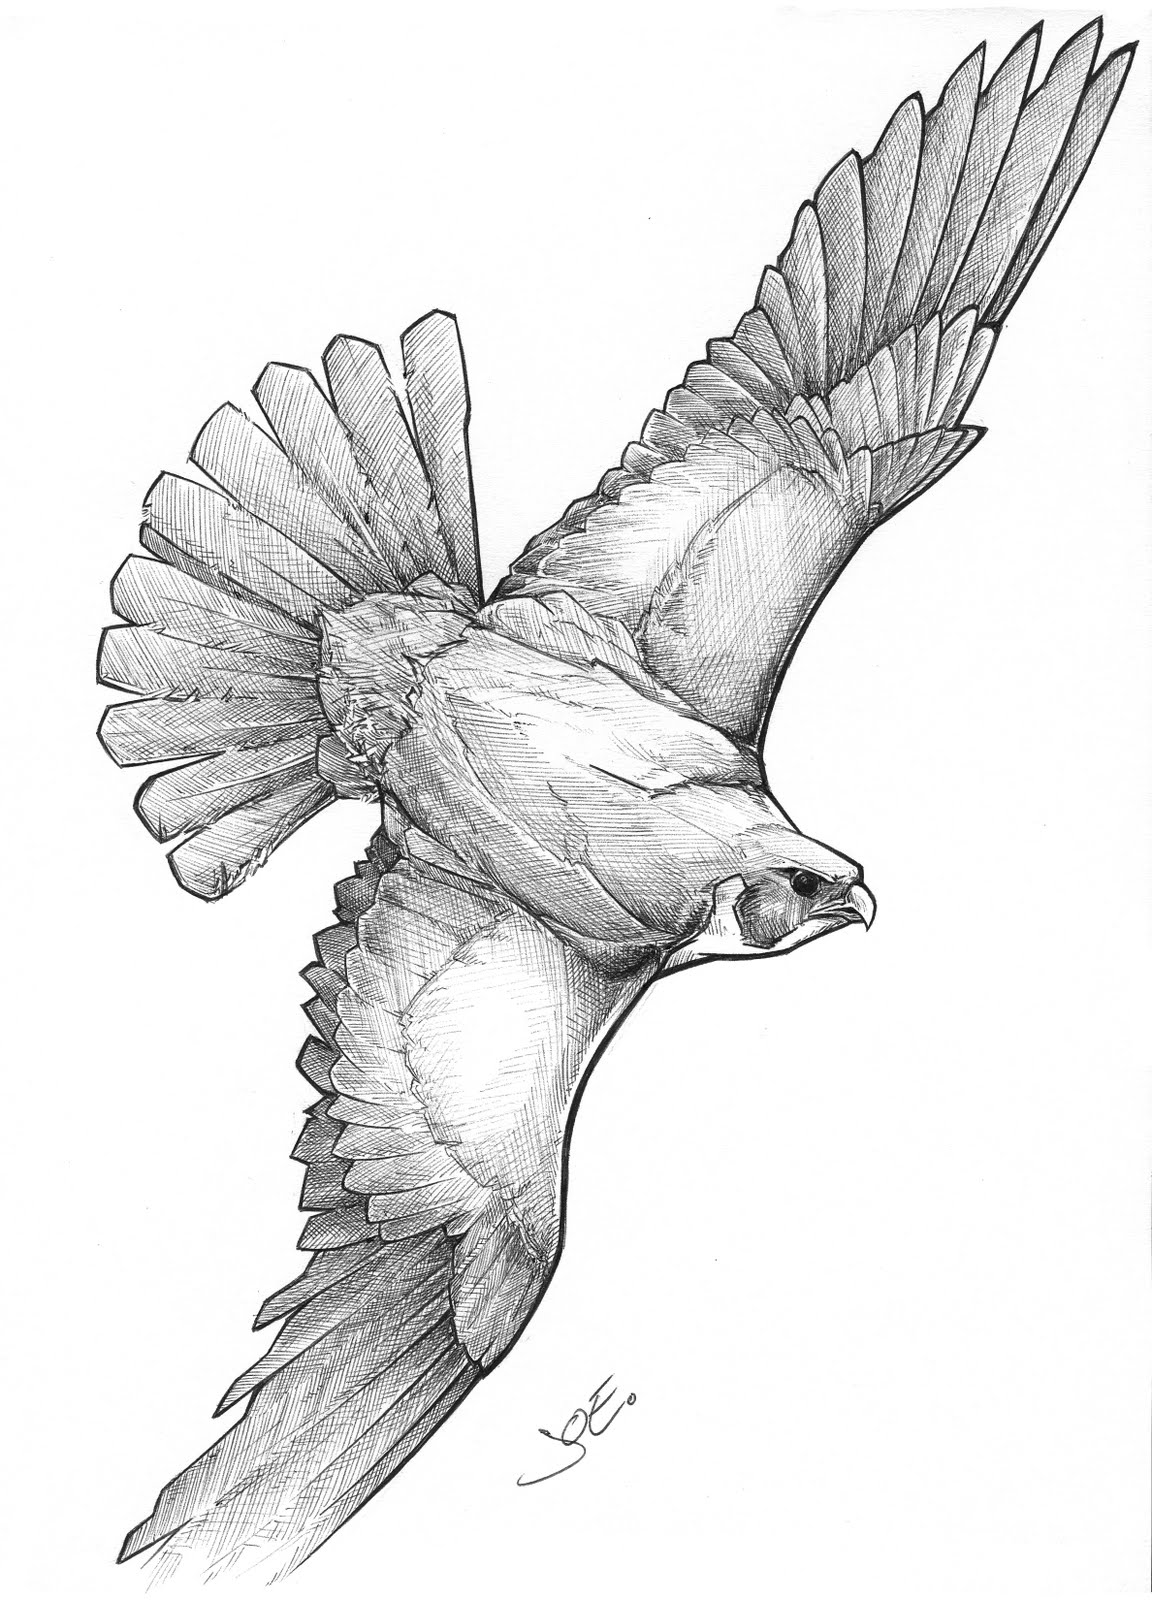 falcon drawings quotfantasy falcon bic biro pen ink drawingquot by dan forder drawings falcon